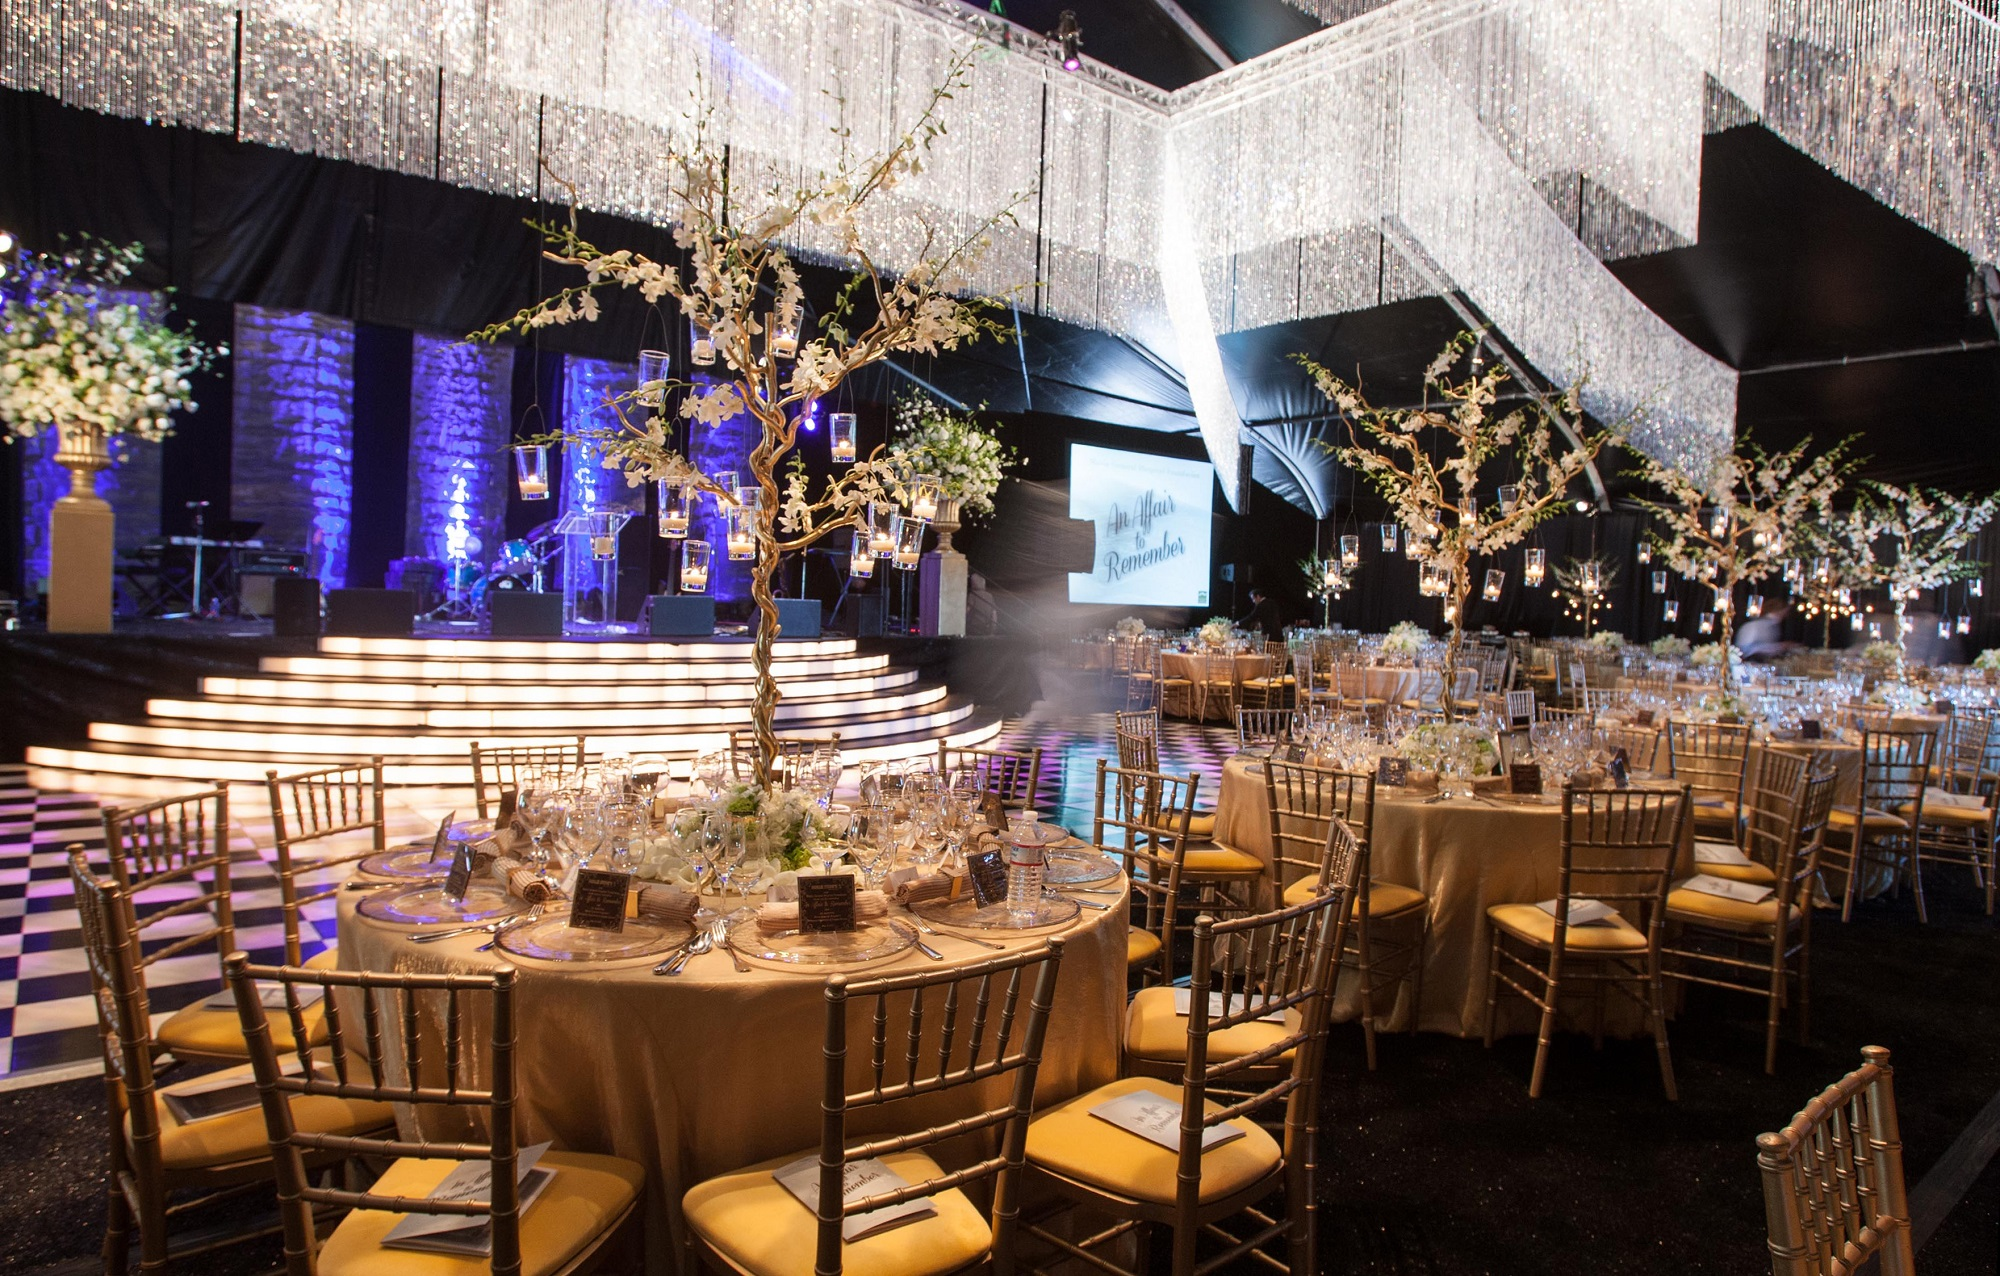 Party Rentals Company Stuart Rental Named to Special ...